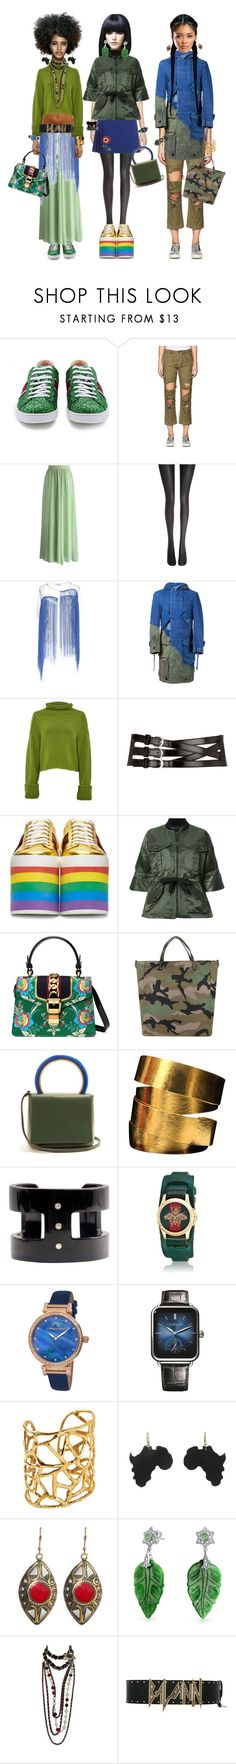 """Seaweed Sistets"" by the1standthe15th ❤ liked on Polyvore featuring Gucci, R13, Chicwish, Wolford, Aviù, Greg Lauren, Amanda Wakeley, Dorothy Perkins, Marissa Webb and Valentino"